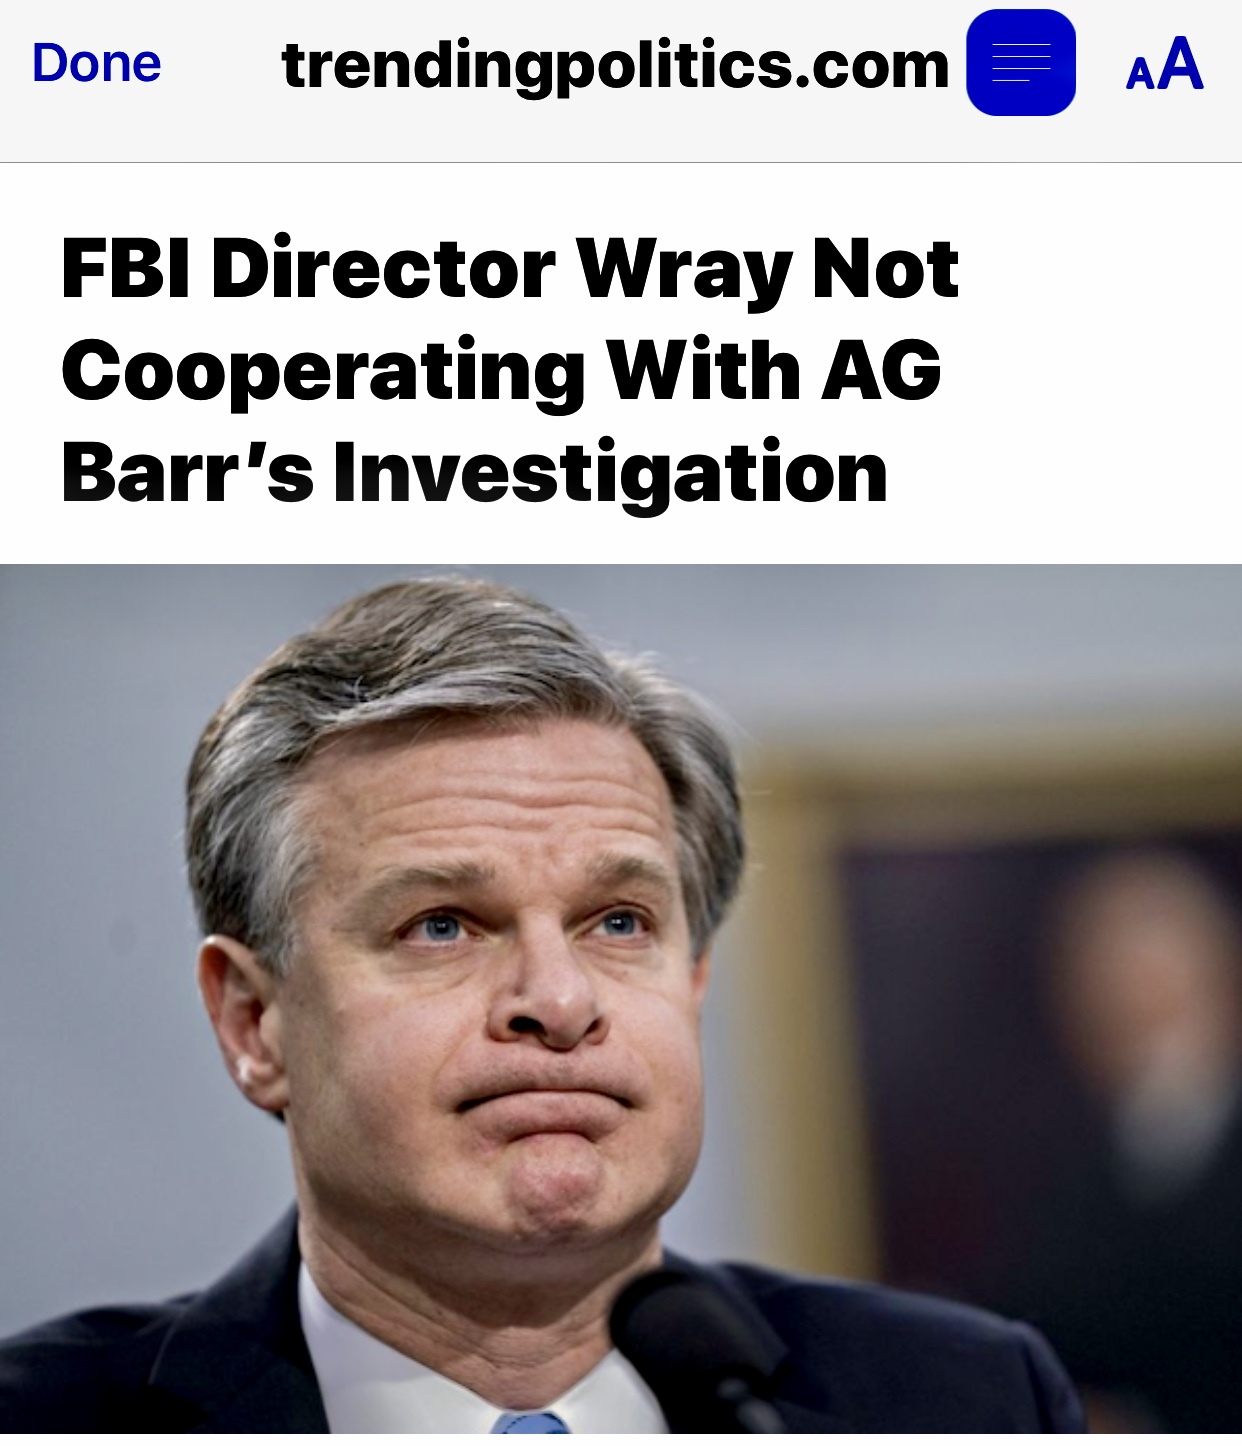 FBI Director Wray Not Cooperating With AG Barr's Investigation Continues to Coverup for Comey